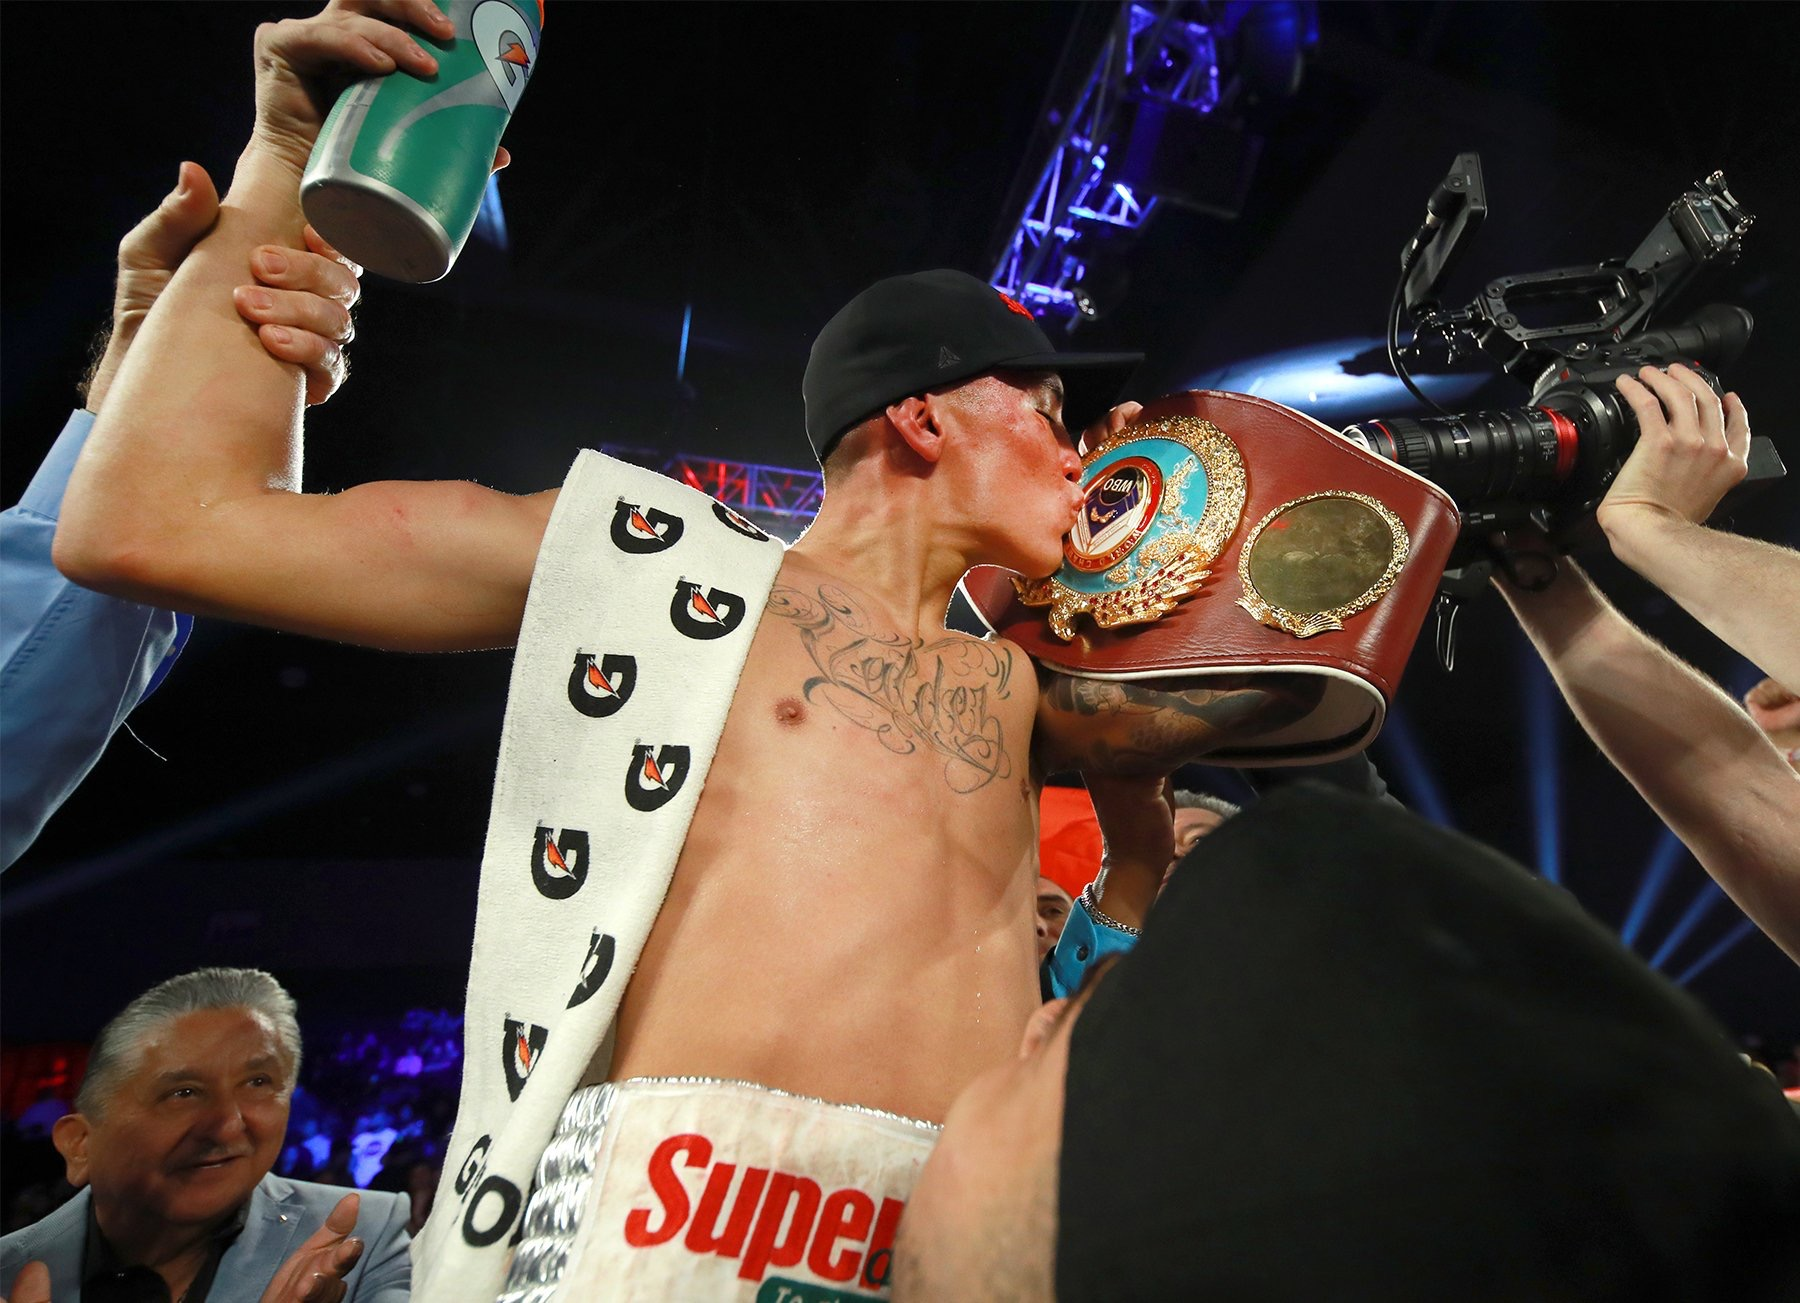 E9F0215D D8EE 4891 AB55 1355C4C15C03 - Oscar Valdez Delivers One-Sided Pummeling for 6th Successful Title Defense